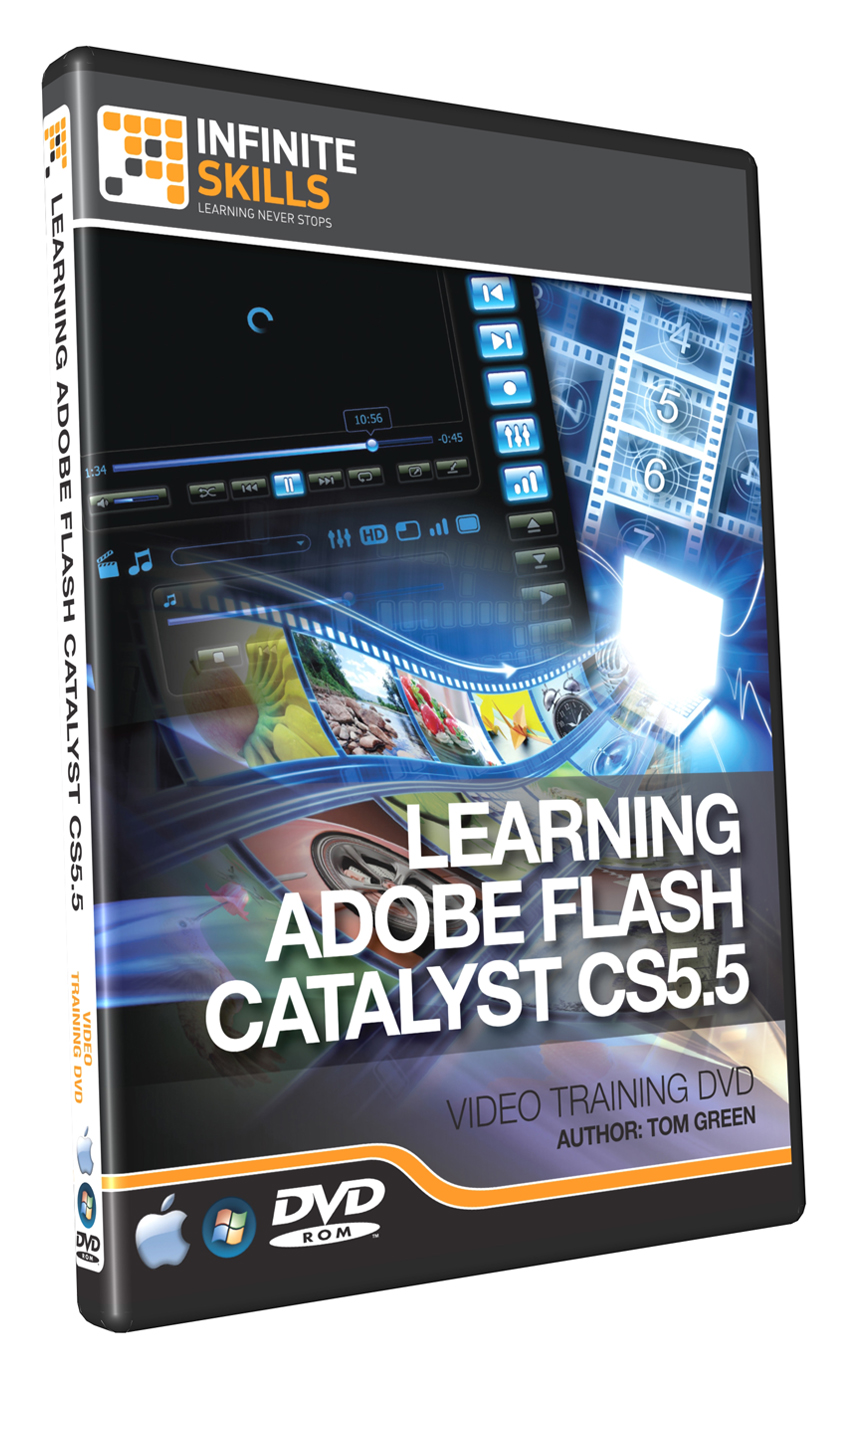 Buy Adobe Flash Catalyst CS - Adobe Flash Catalyst CS